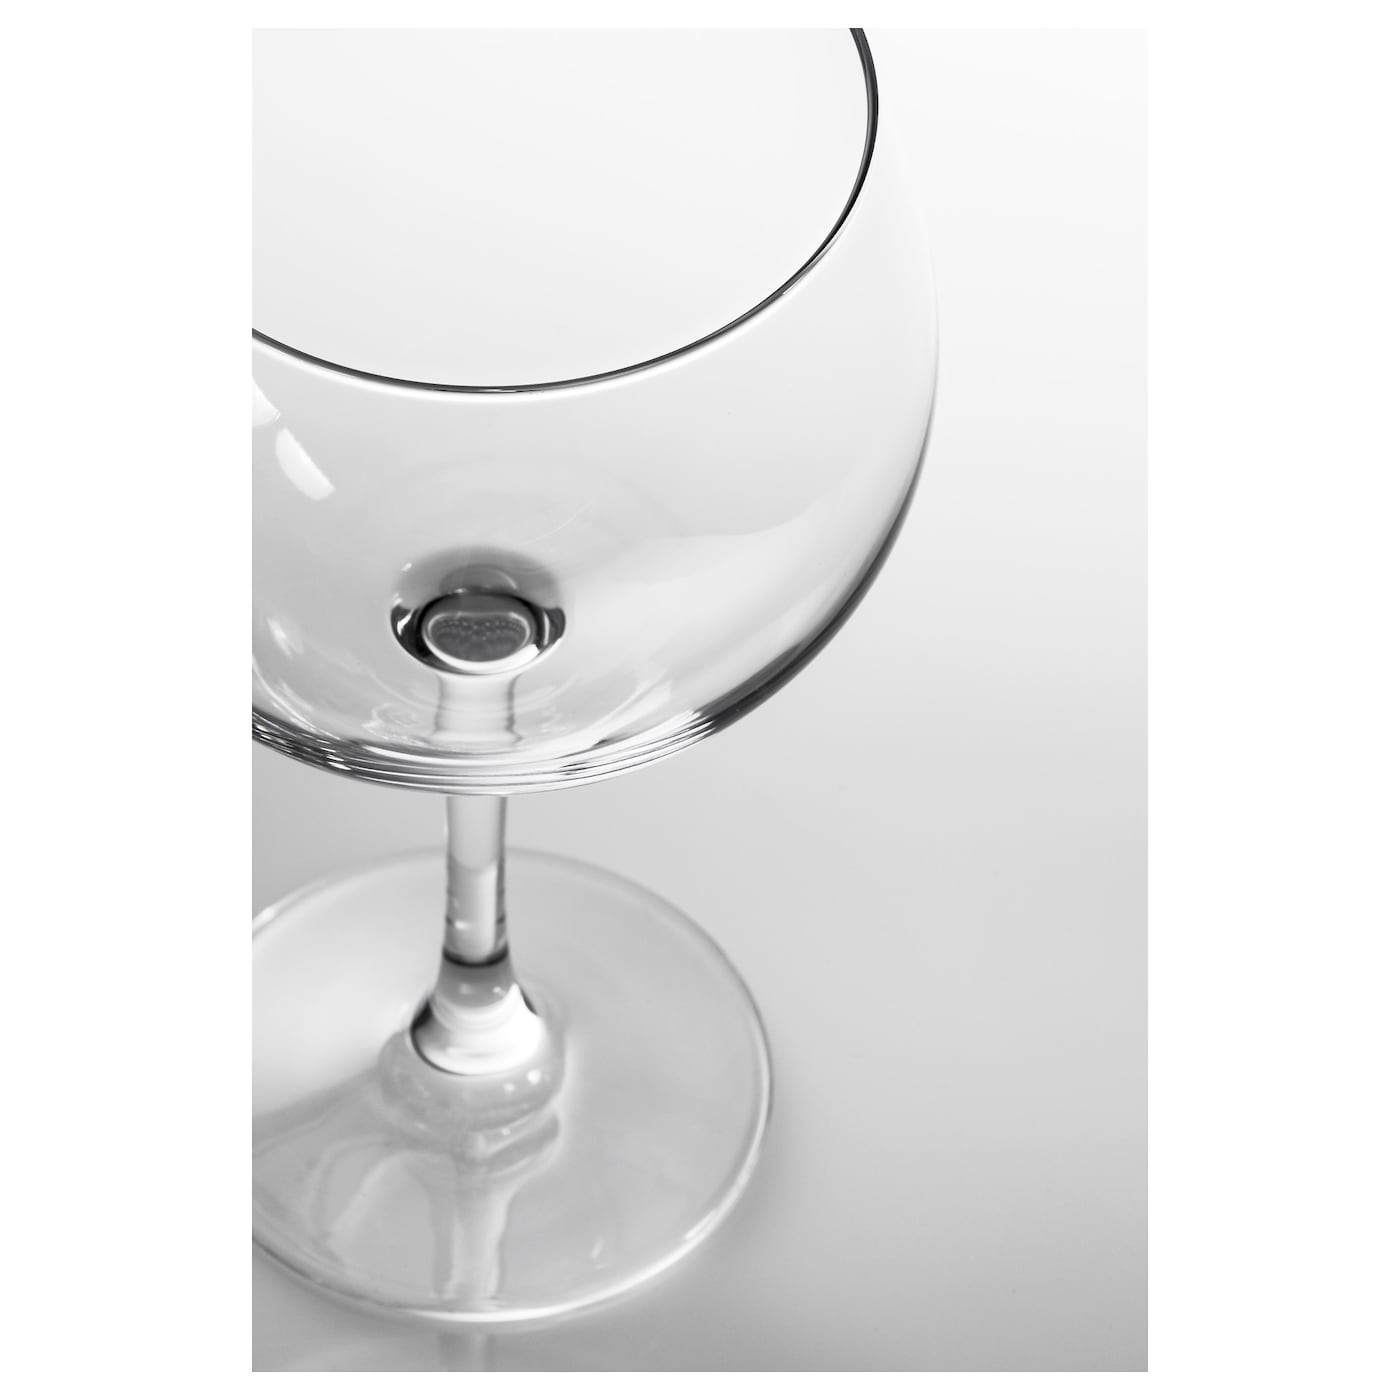 IKEA LJUSKRAFTIG cocktail glass